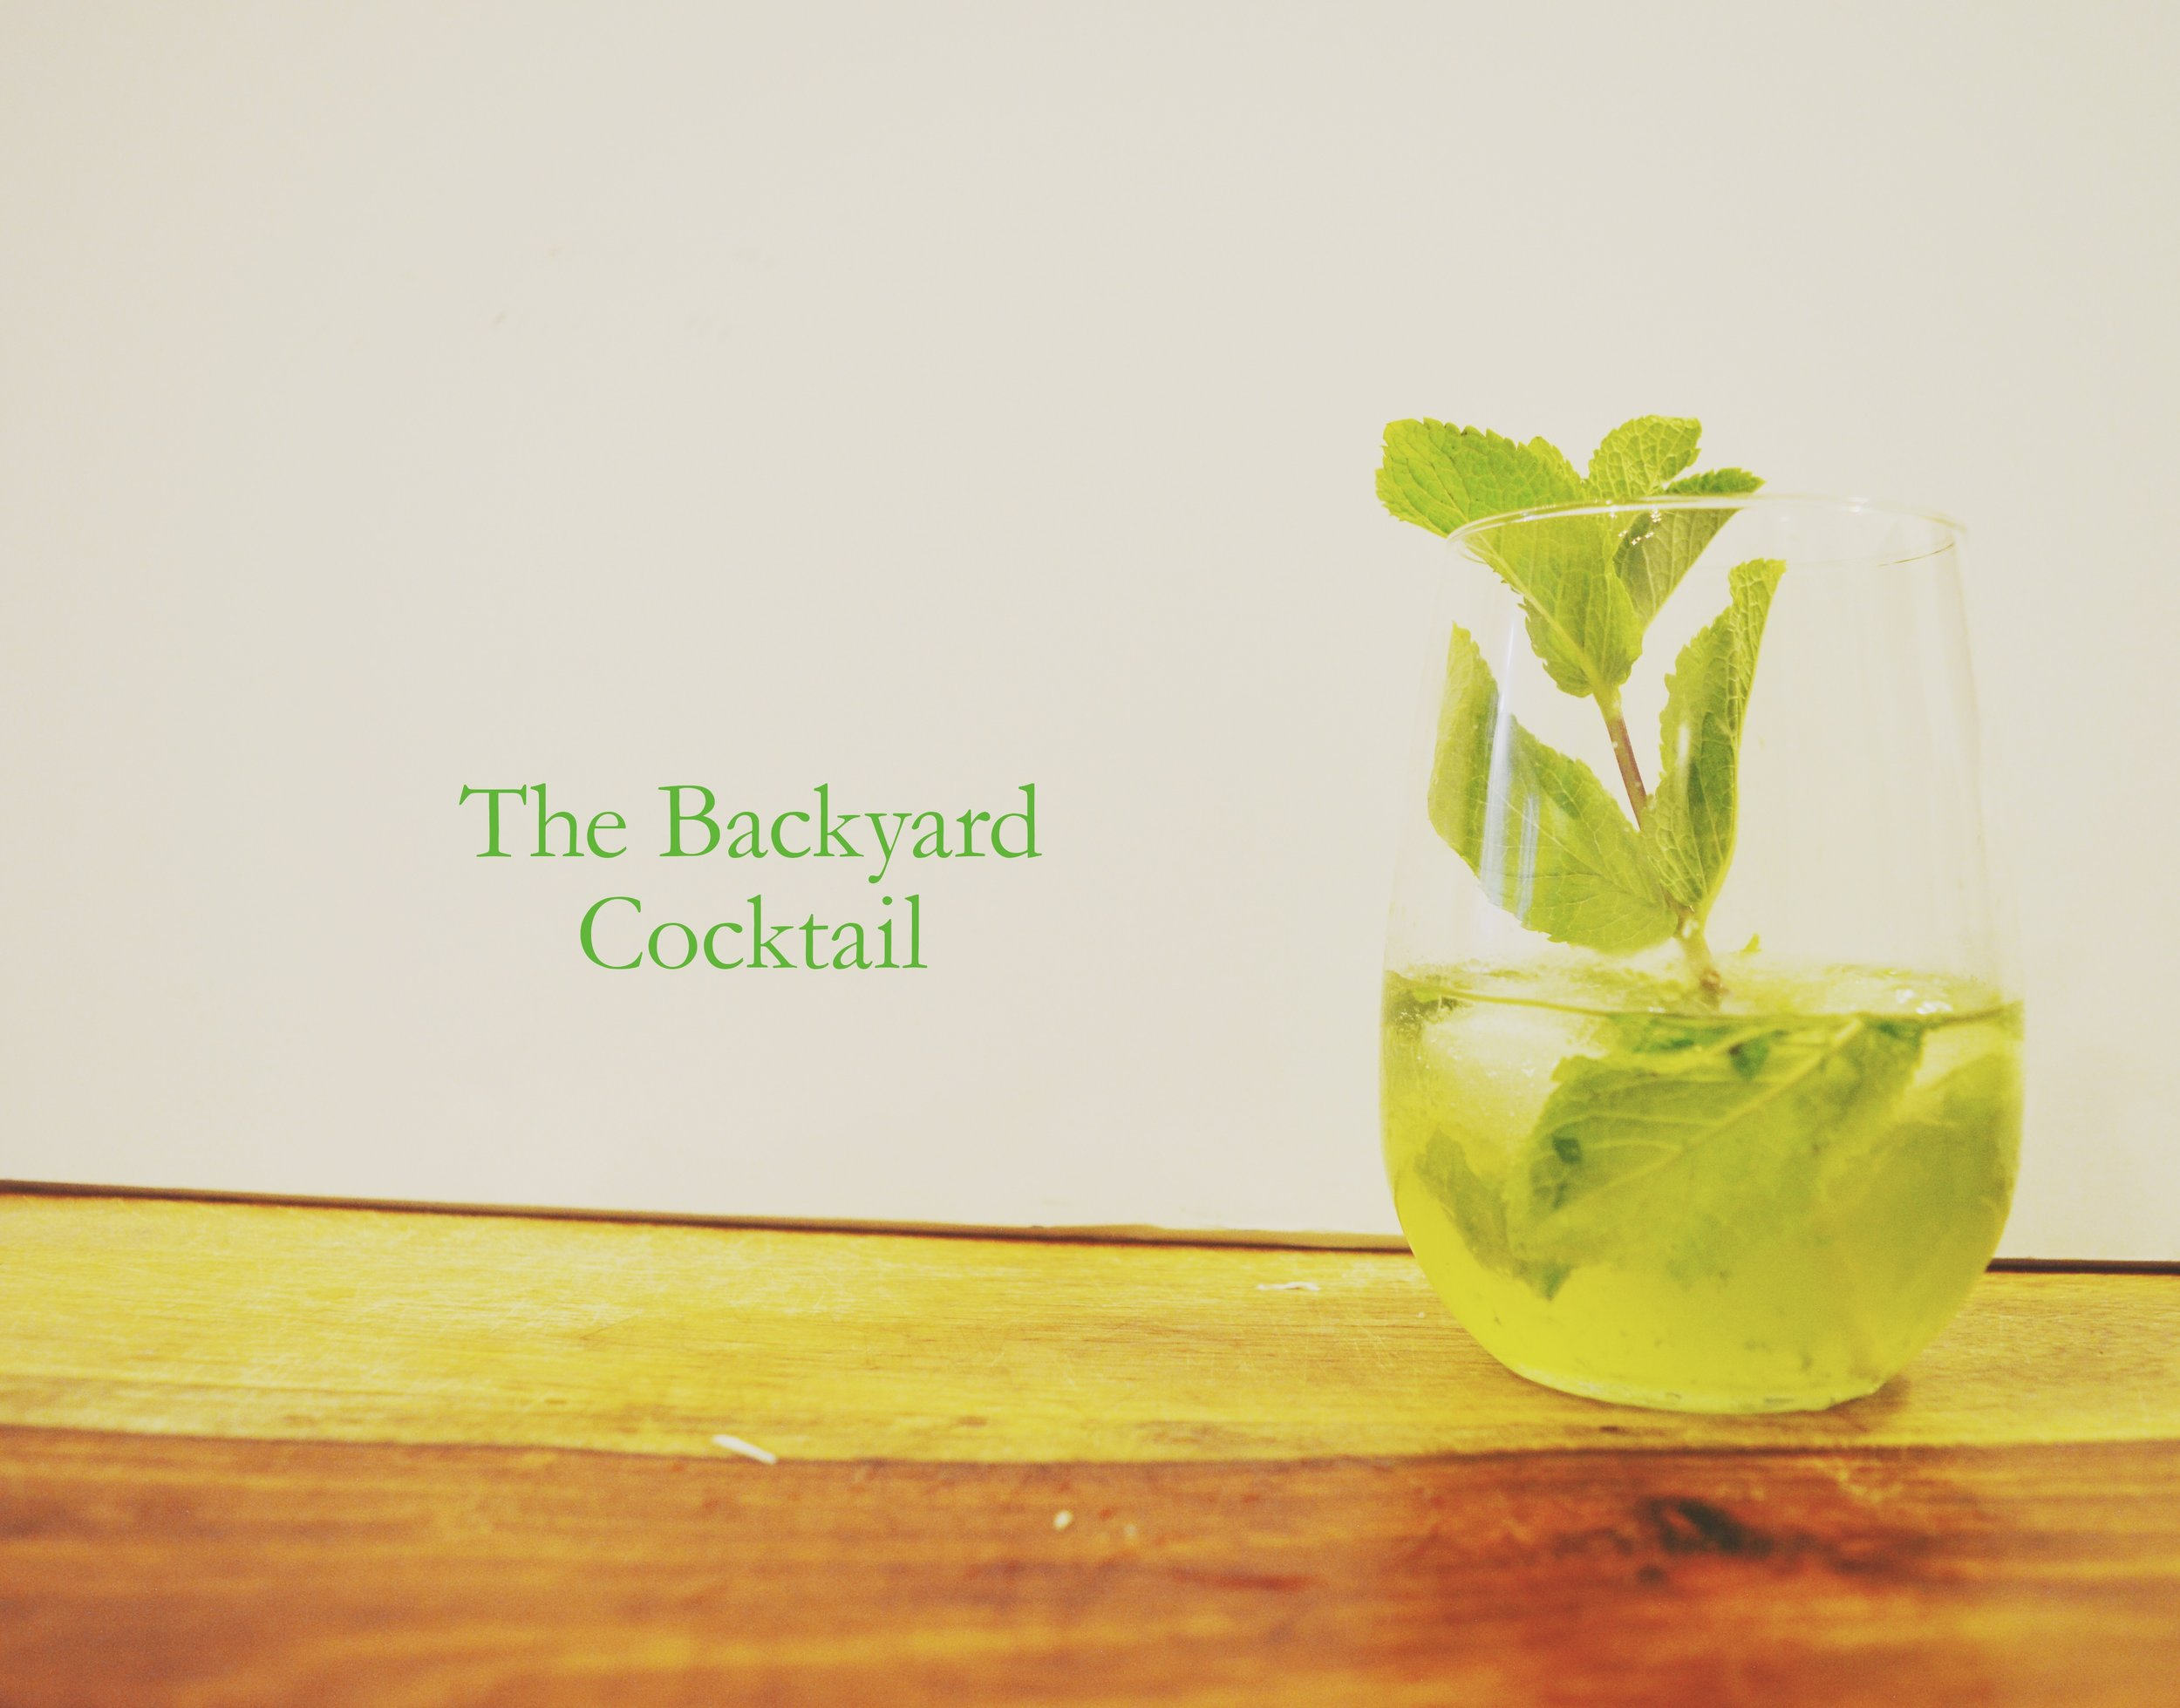 The Backyard Cocktail